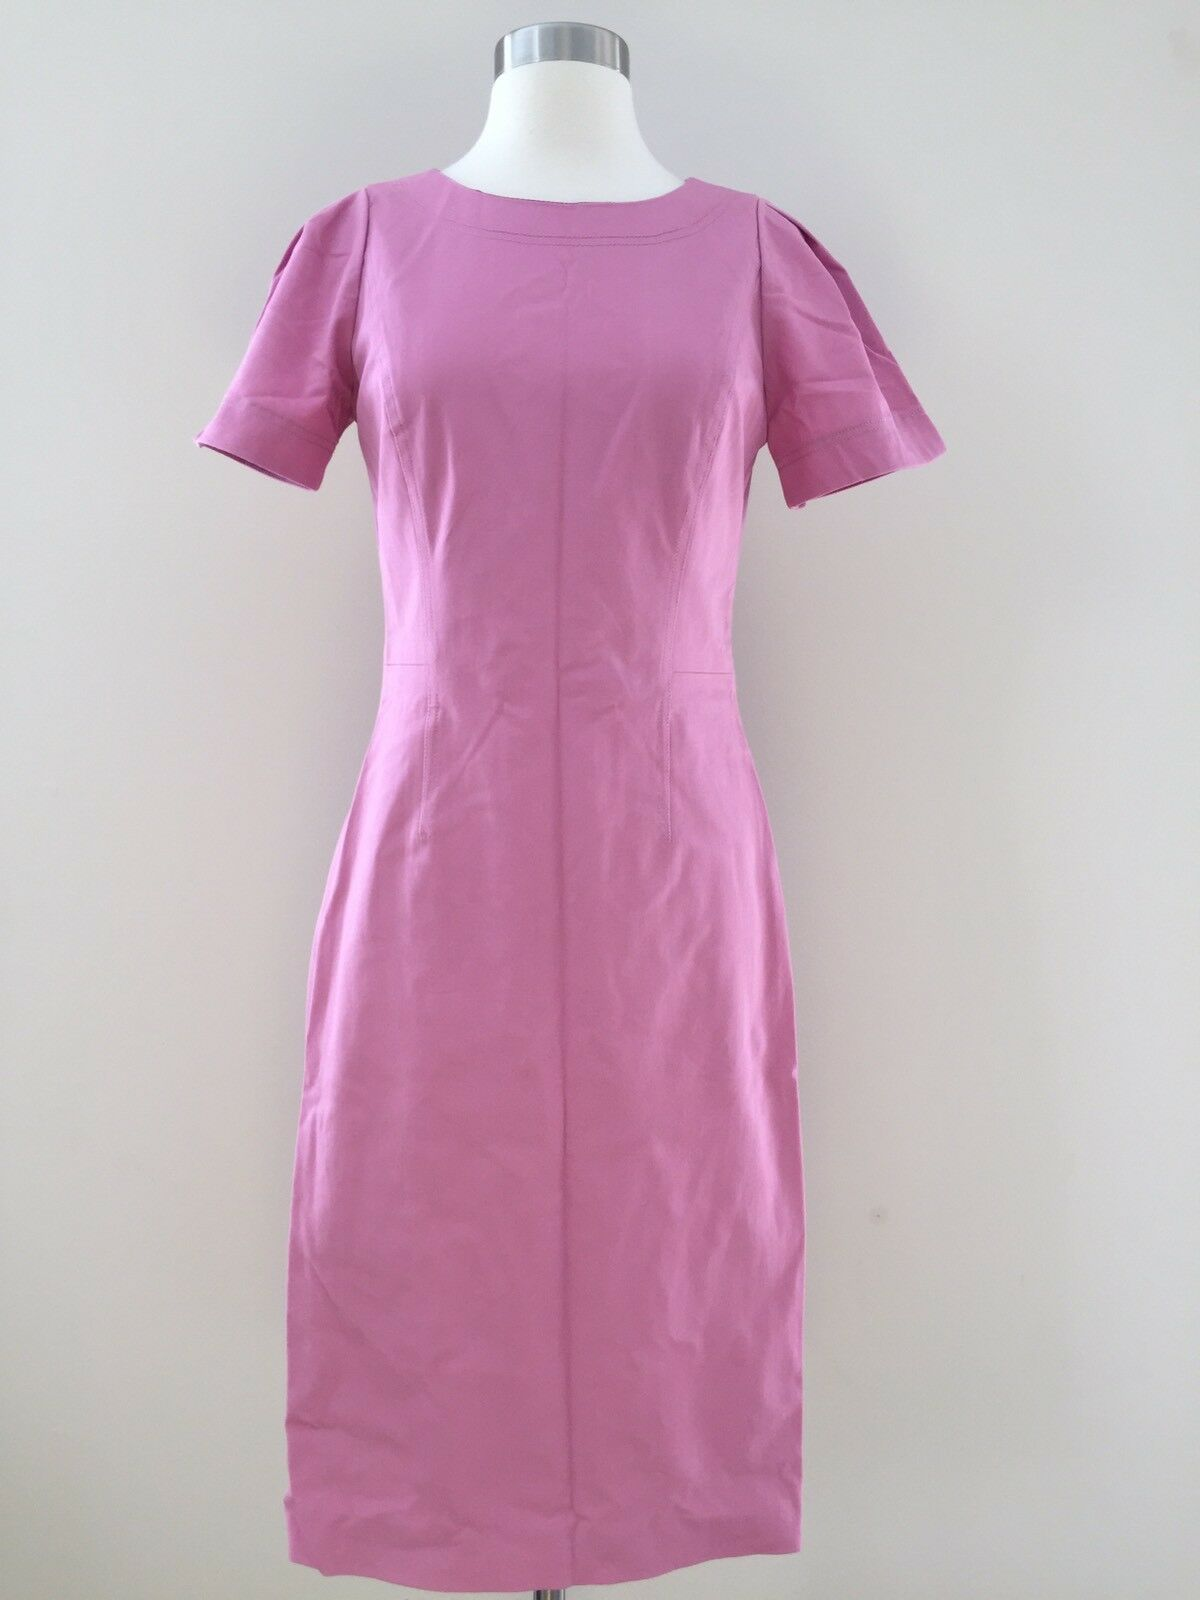 J.Crew Tall gathered-sleeve dress two-way stretch cotton G3932 2T Pink